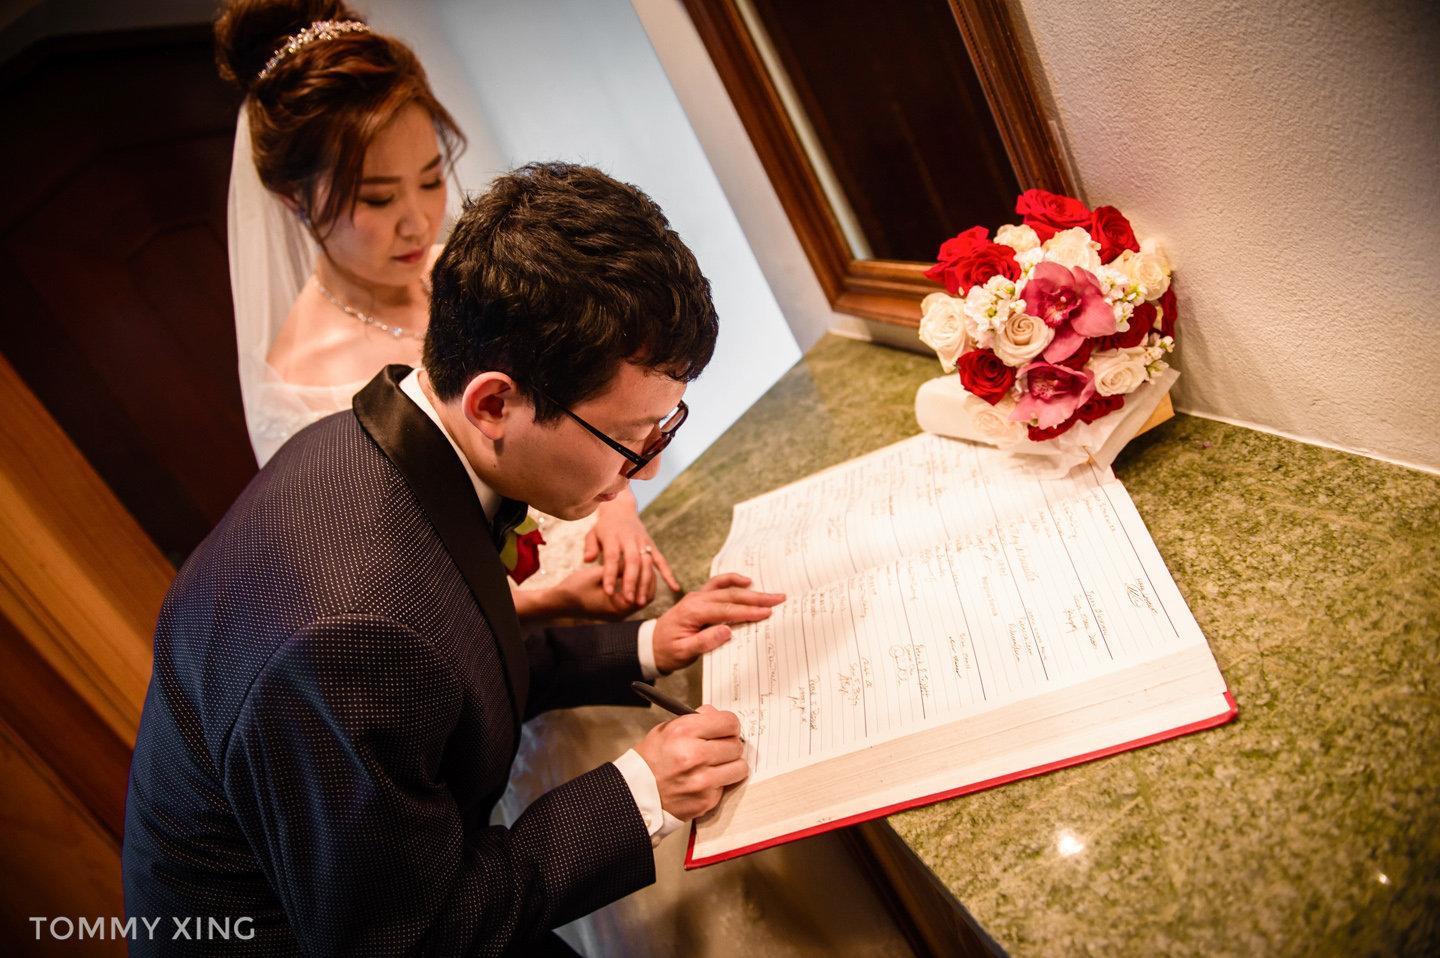 Los Angeles Wedding Photographer 洛杉矶婚礼婚纱摄影师 Tommy Xing-87.JPG